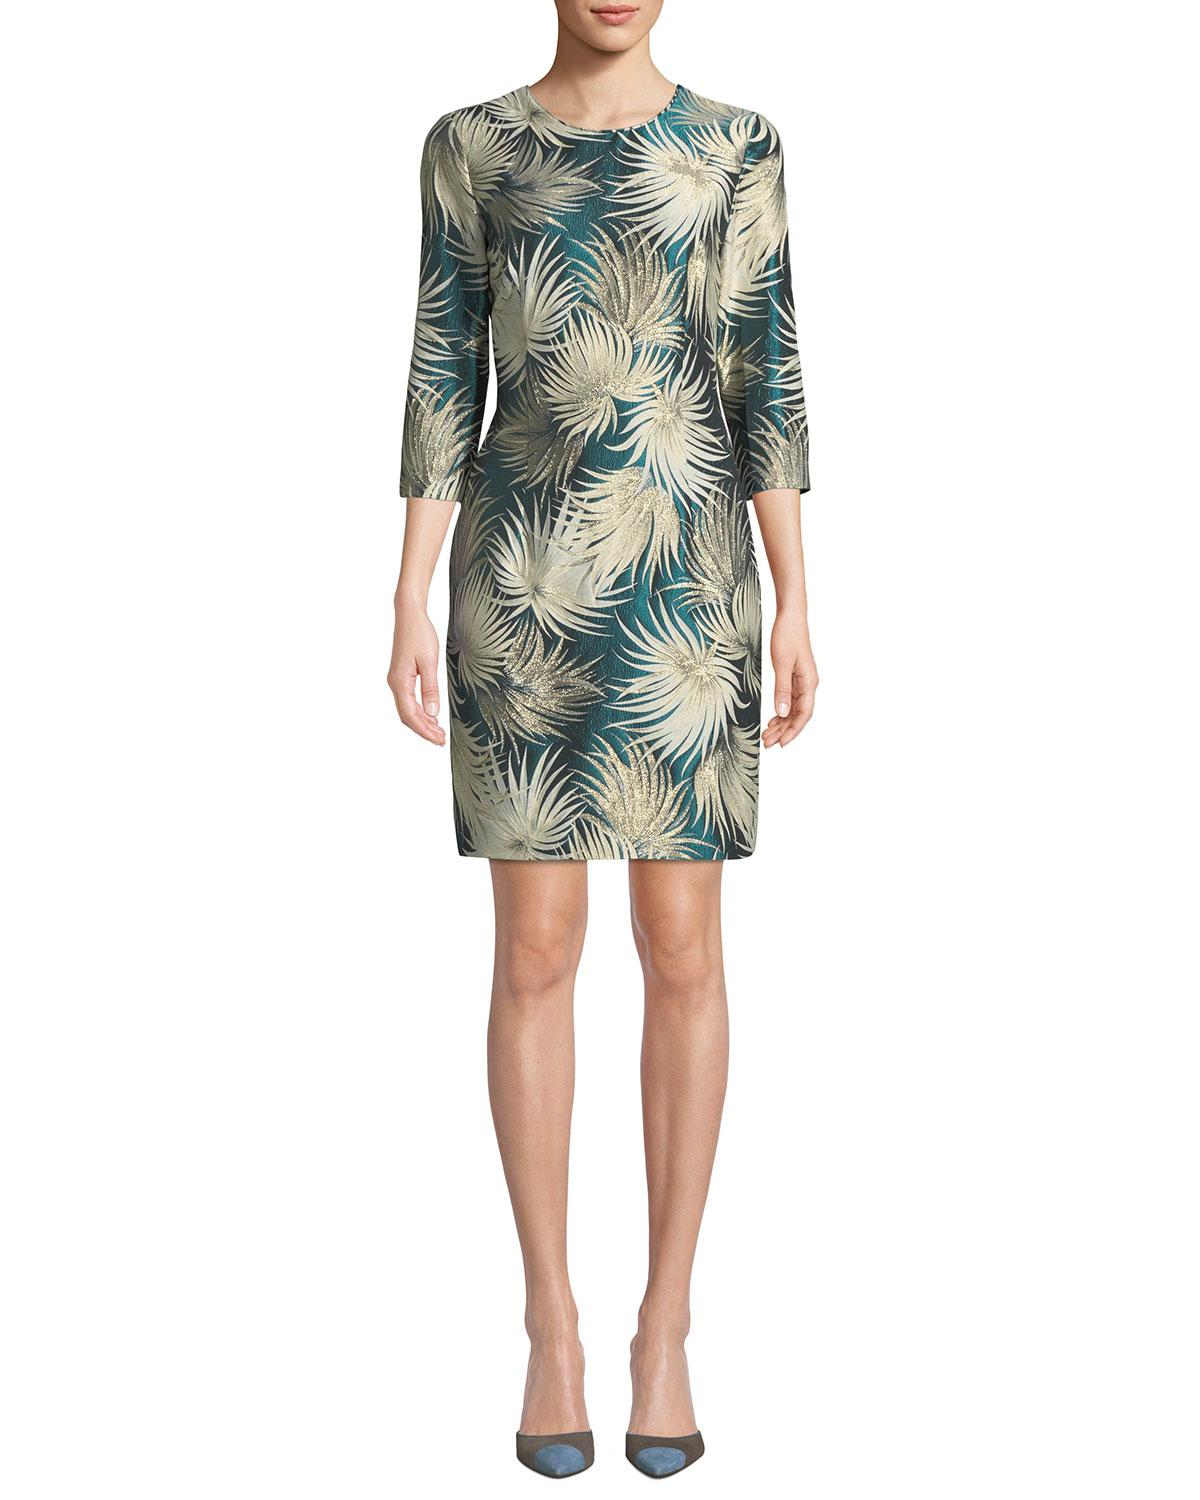 1d9cd0f81d0 Naeem Khan. Women s Blue 3 4-sleeve Metallic Palm Jacquard Cocktail Dress